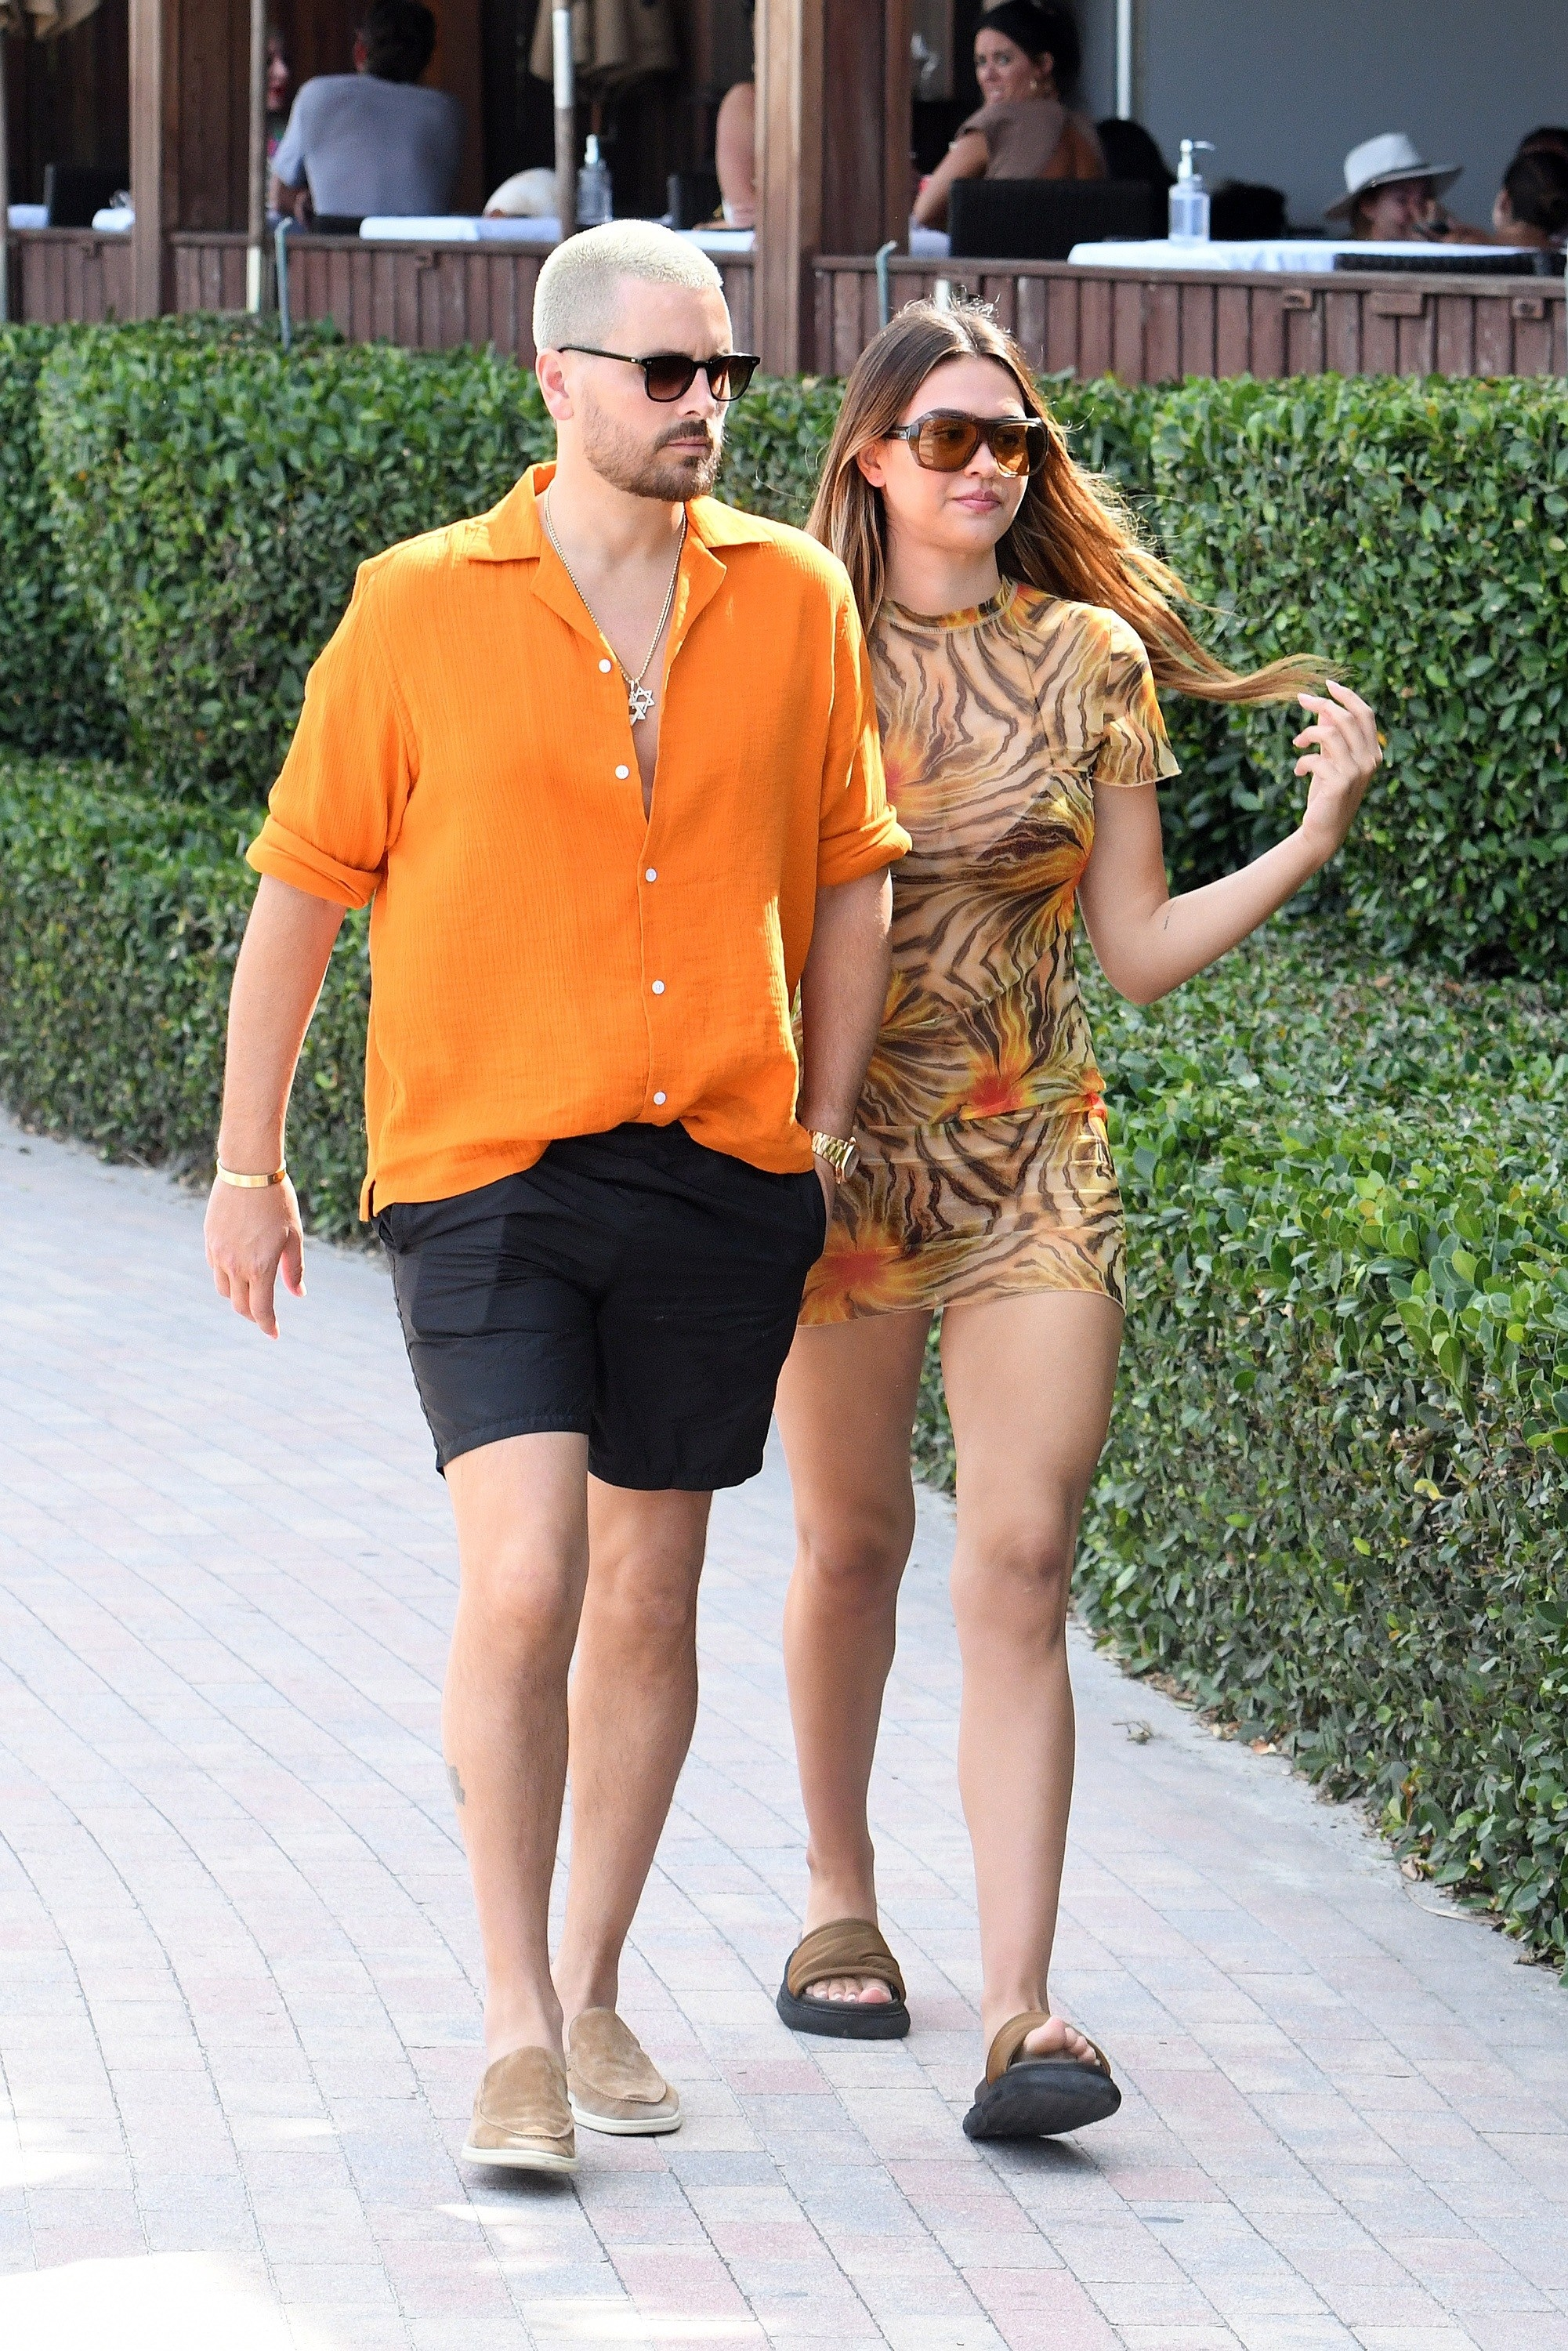 Scott Disick and Amelia Hamlin are seen walking at the beach on April 7, 2021 in Miami, Florida